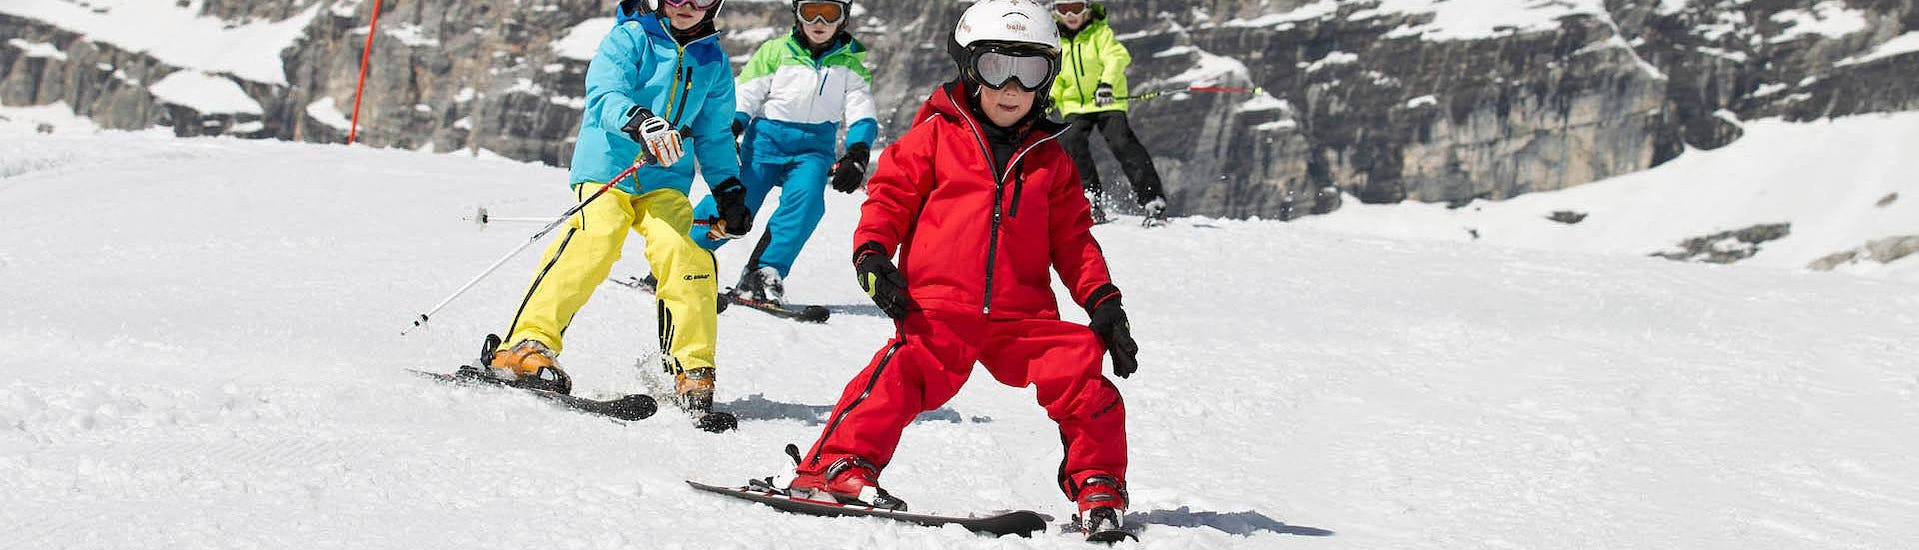 Ski Instructor Private for Kids - All Ages with Skischule Egon Hirt - Hero image